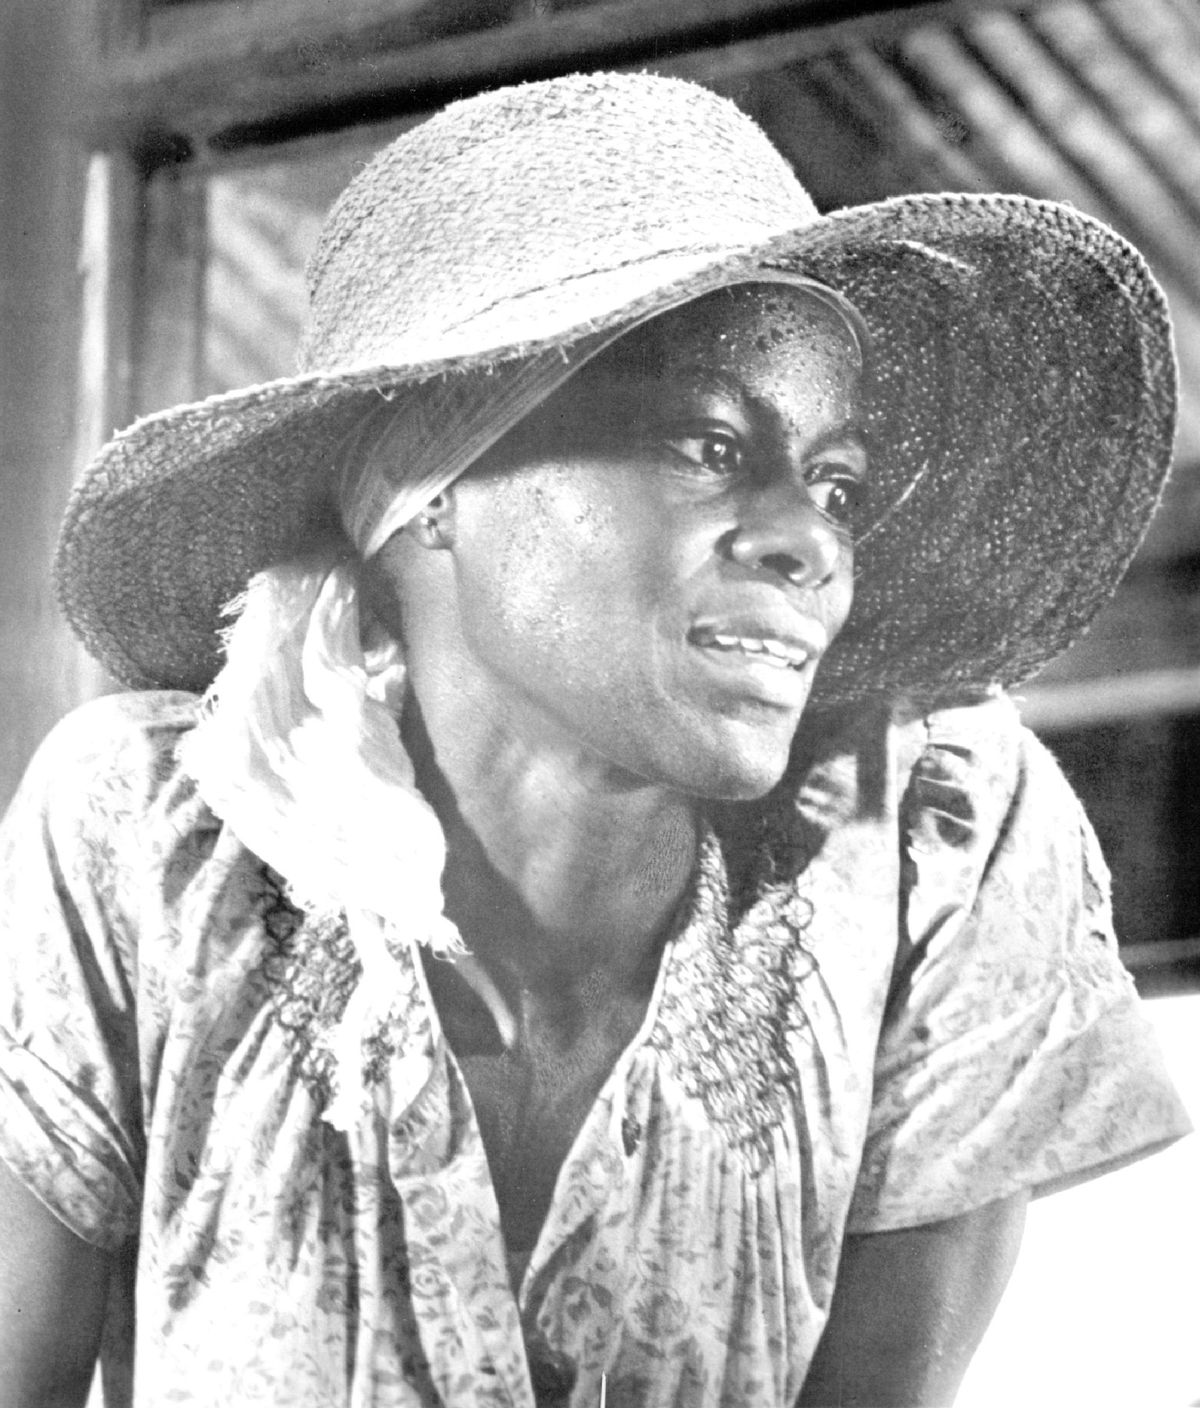 """Cicely Tyson received an Academy Award nomination for her sensitive portrayal of a Depression-era sharecropper in """"Sounder."""""""